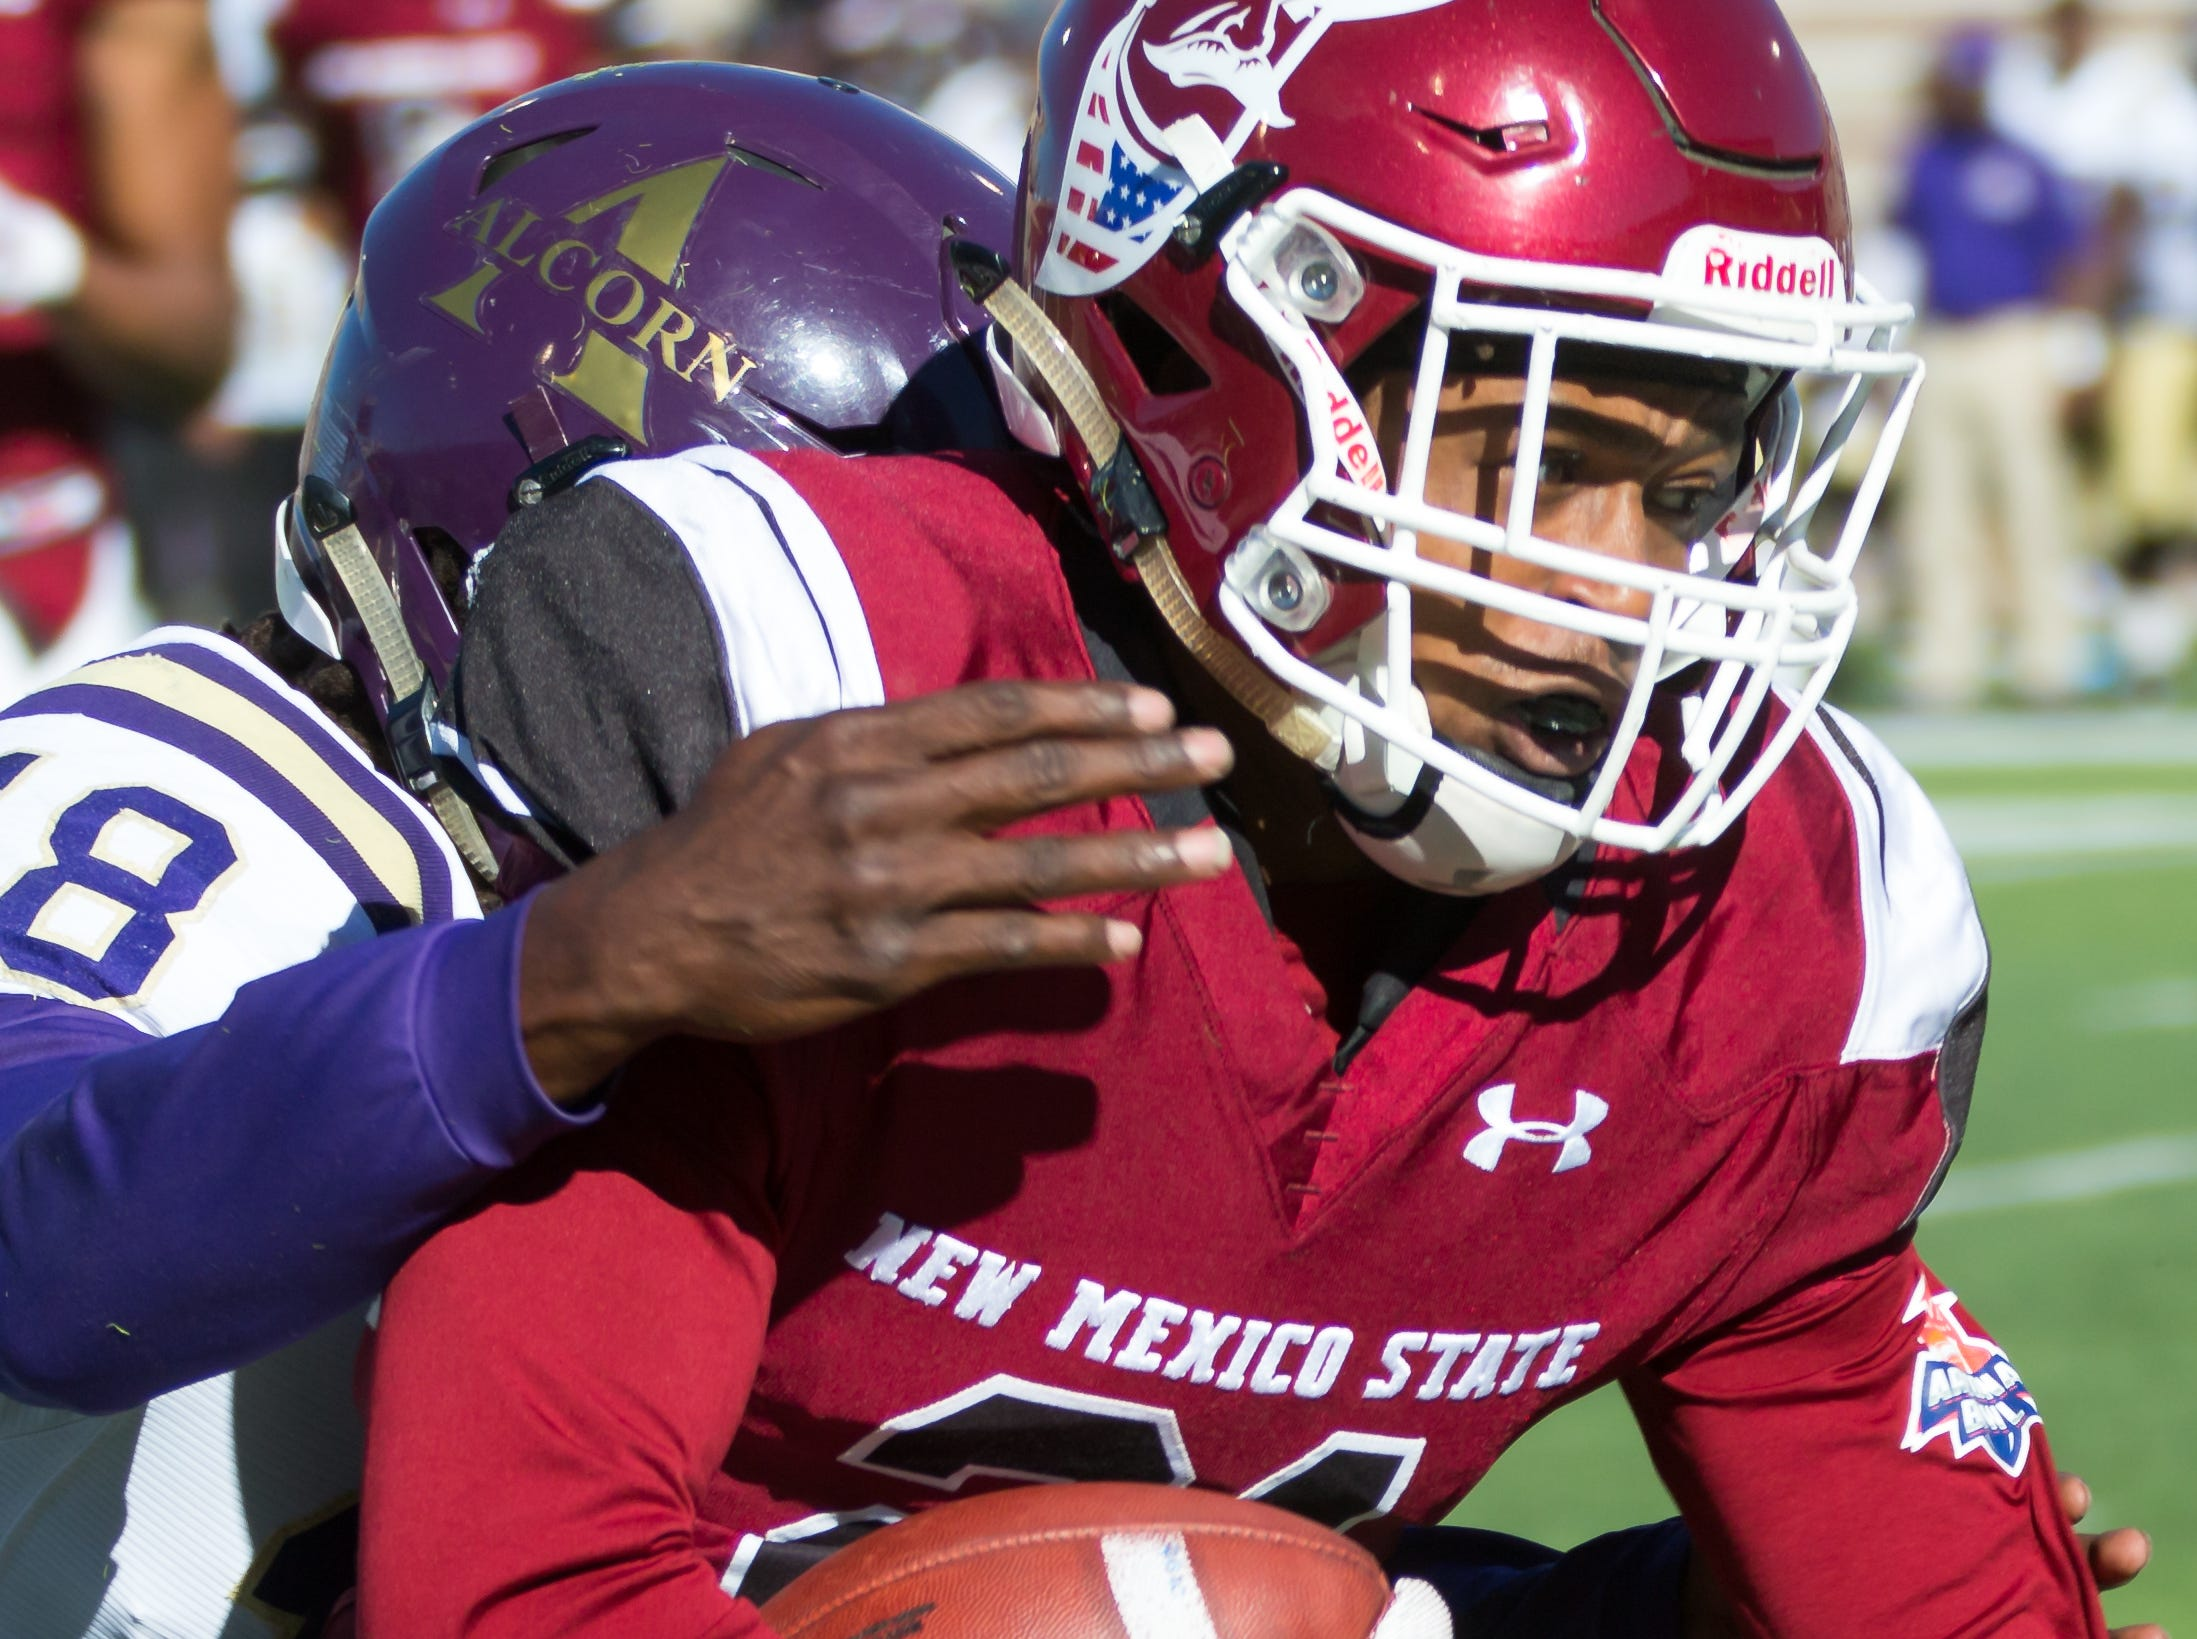 New Mexico State University's wide receiver Anthony Muse looks for yards while his Alcorn State opponent Leishaun Ealey tries to make the tackle on Saturday, Nov. 3, 2018 at Aggie Memorial Stadium,